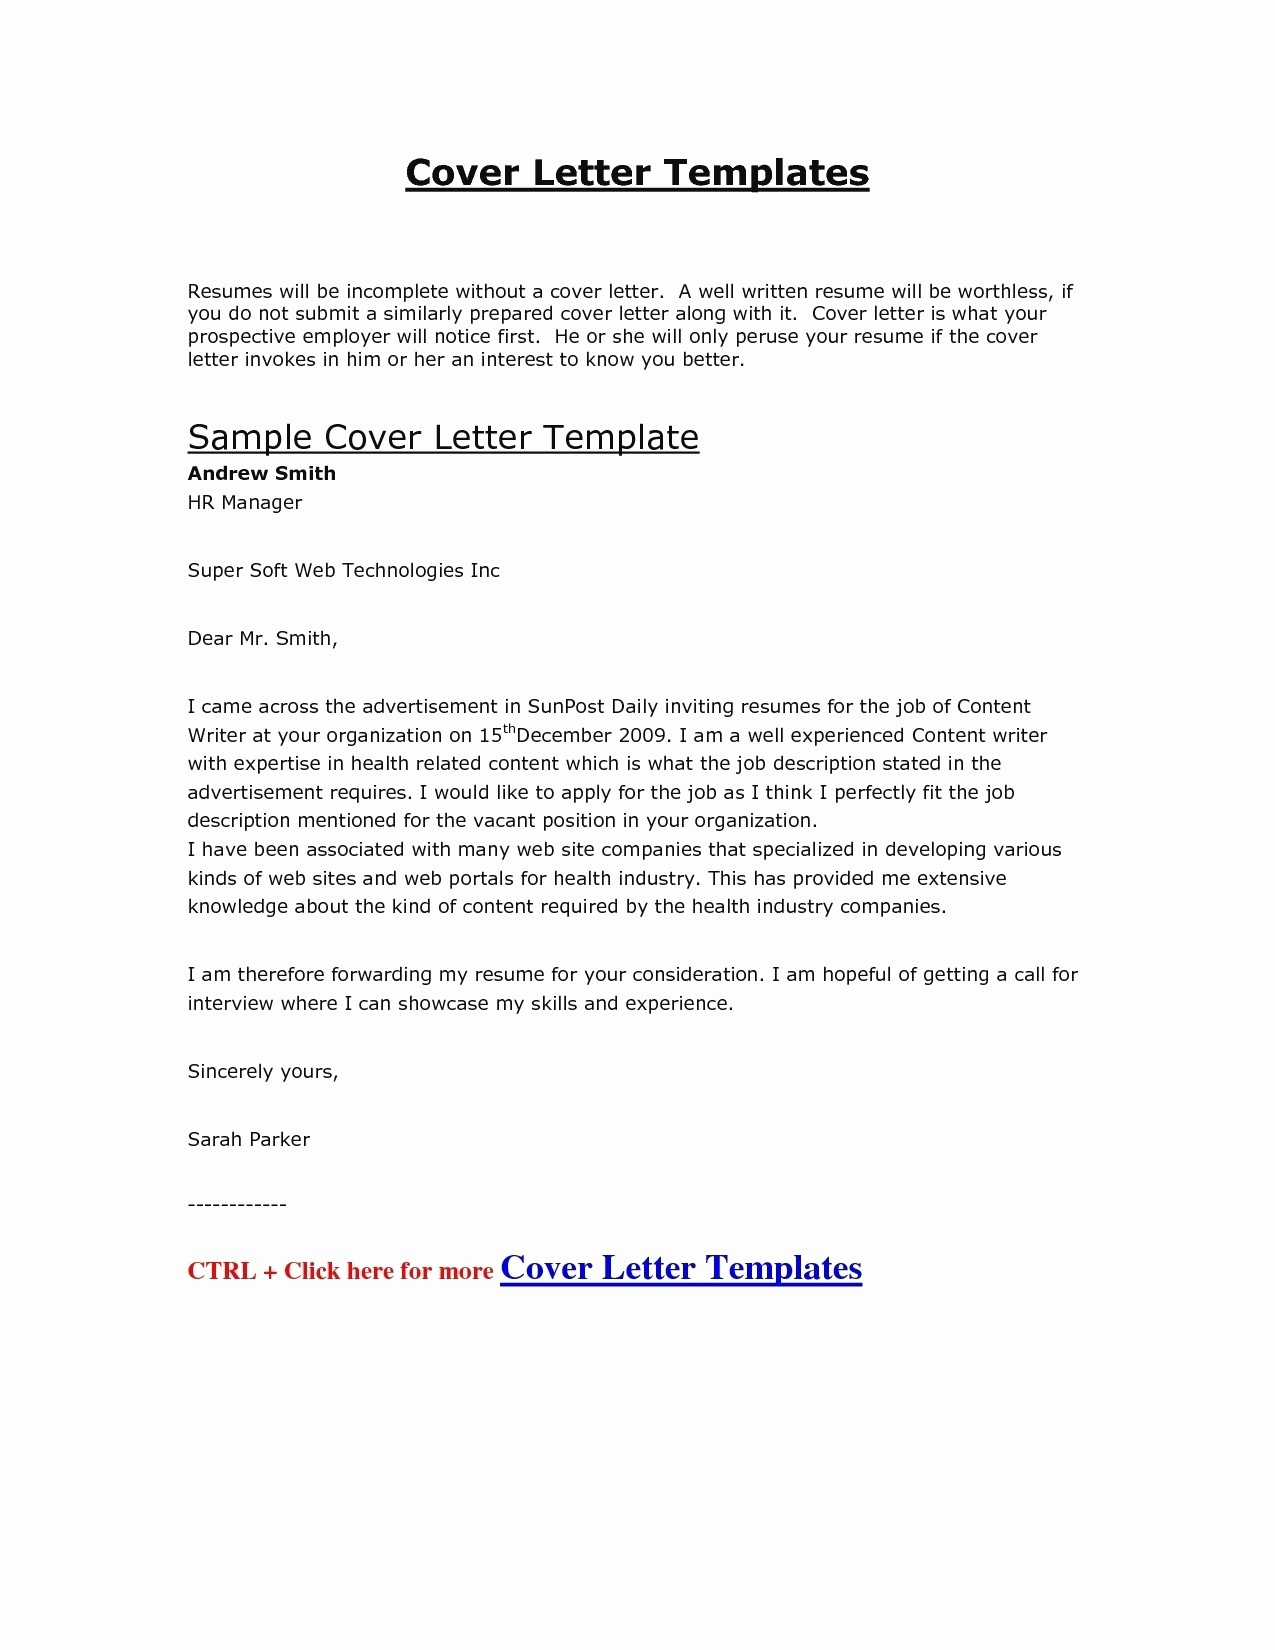 Pre Hire Letter Template - Job Application Letter format Template Copy Cover Letter Template Hr